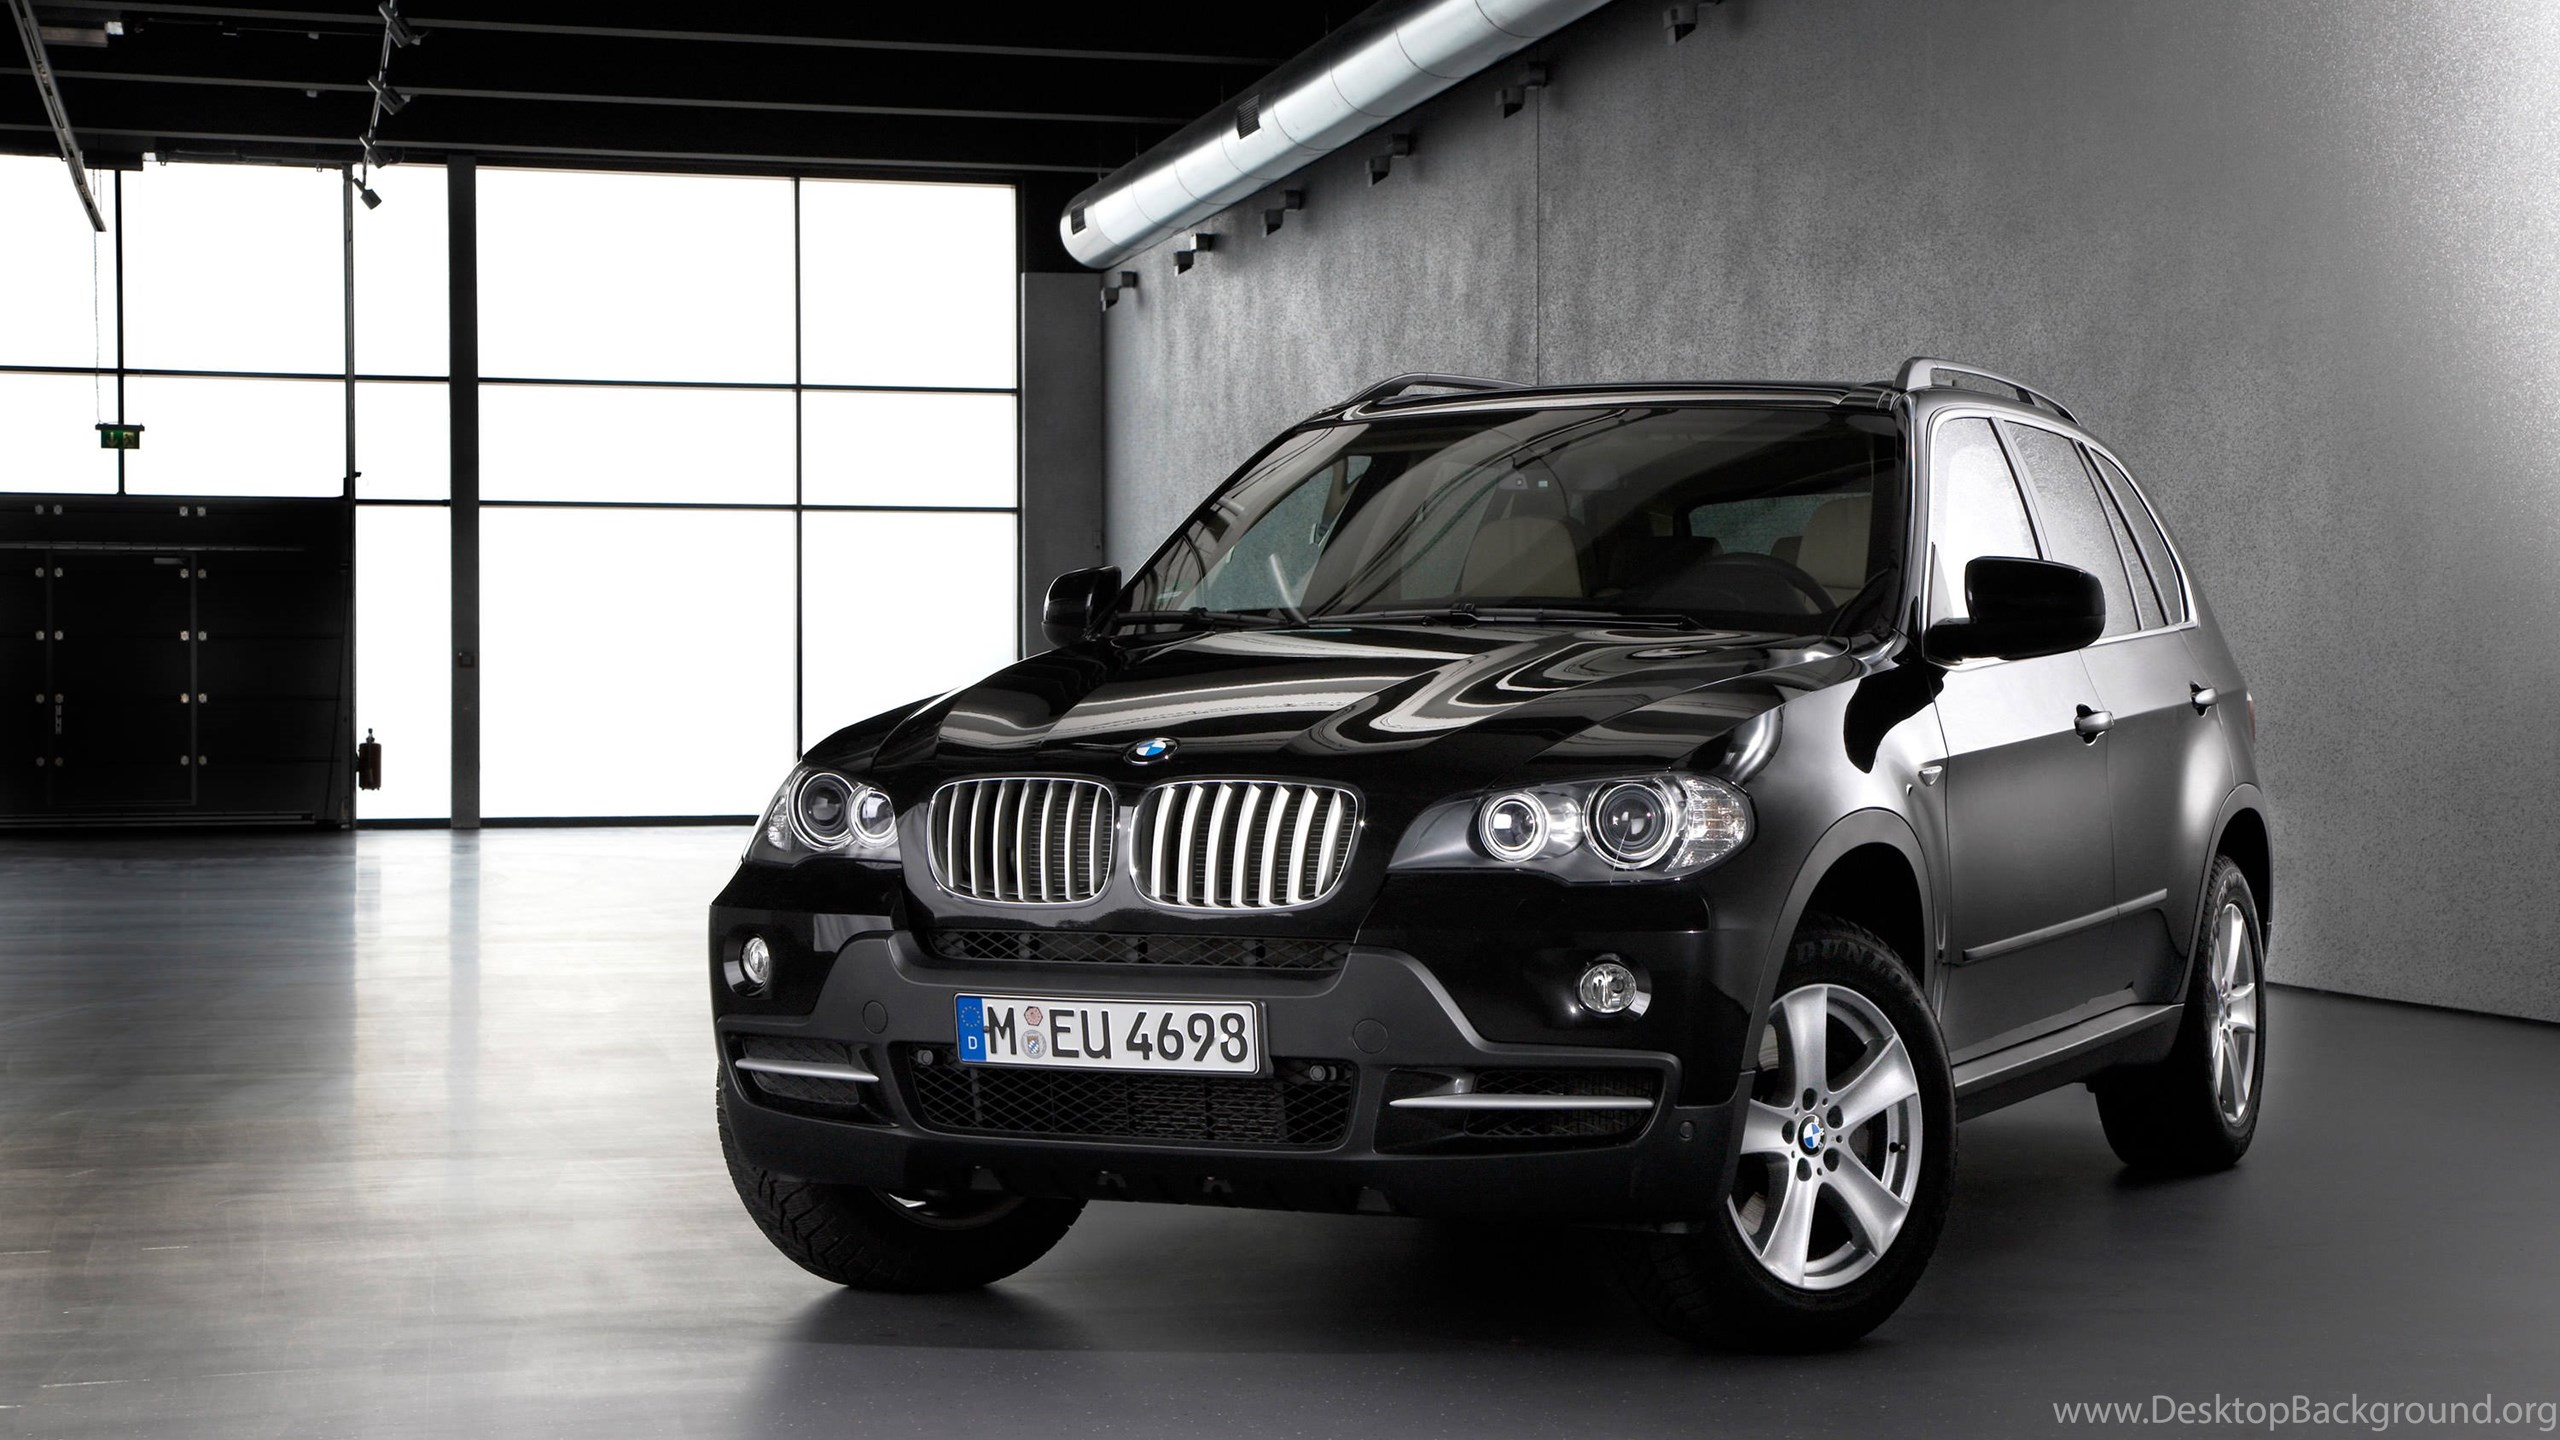 Black Bmw X5 Wallpapers For Computer Desktop Android Ios Iphone Desktop Background